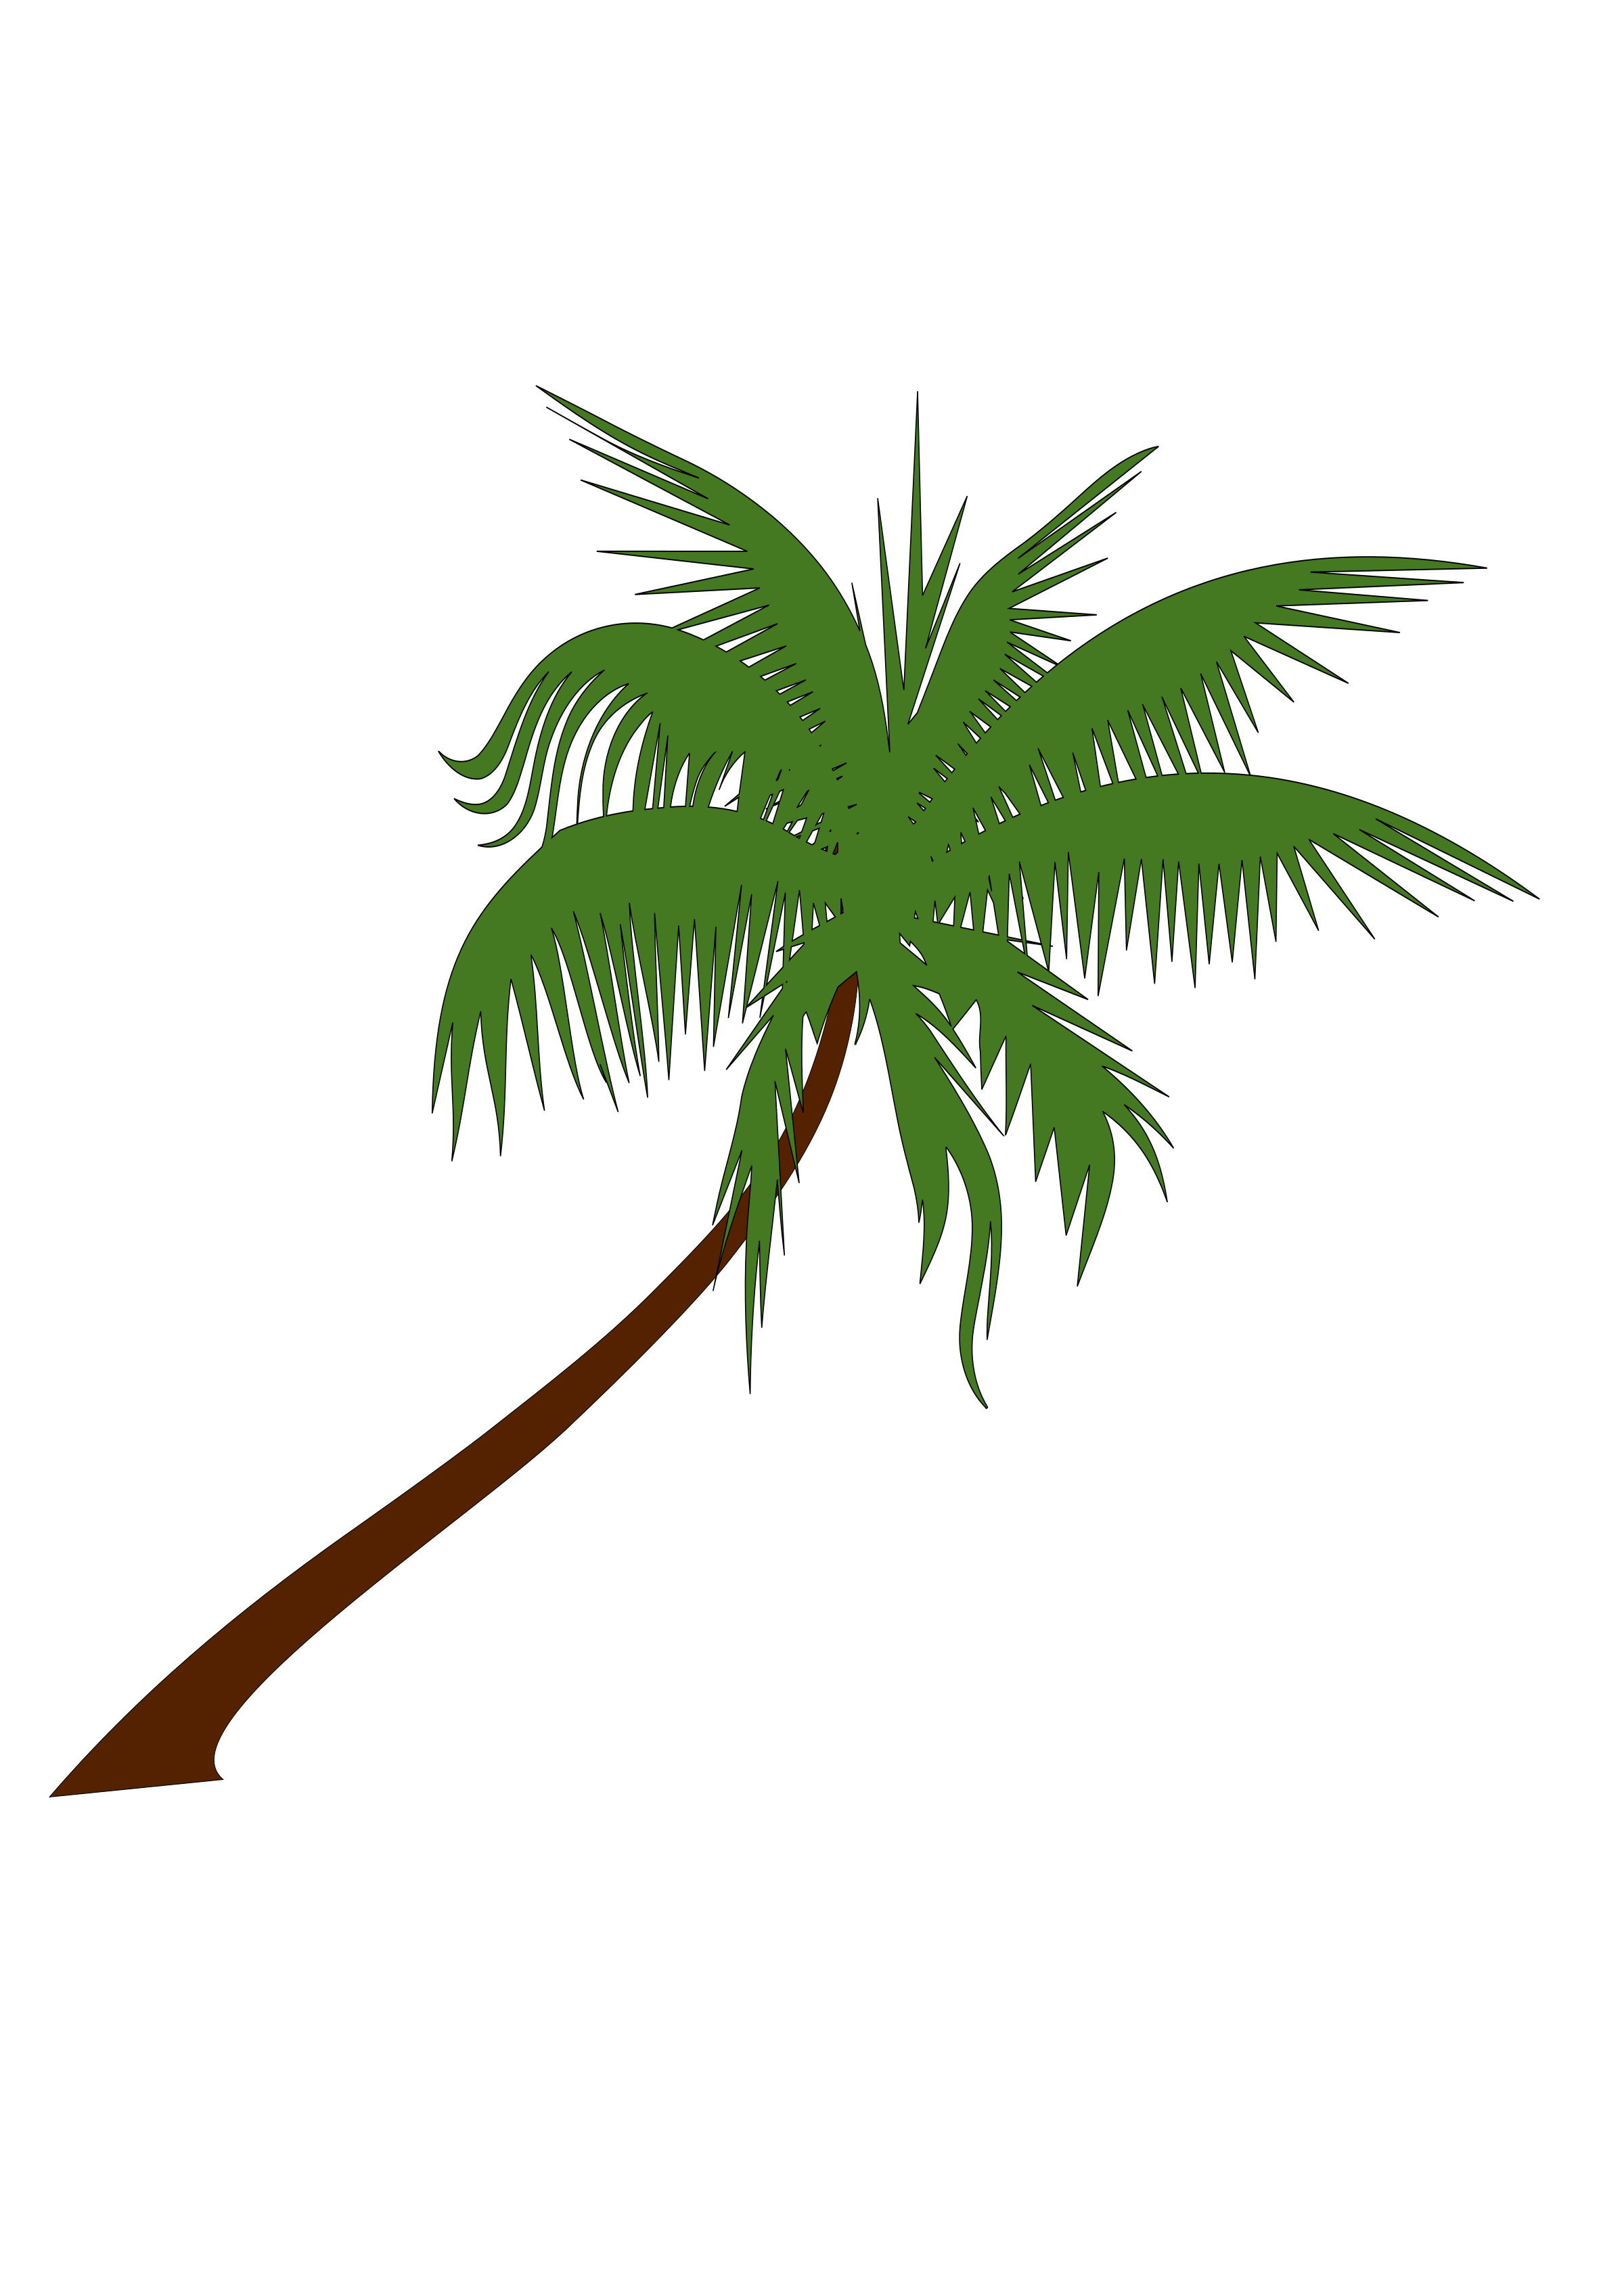 Palm tree with coconuts clipart image 10 Coconut Tree Png Frees That You Can Download To clipart free image image